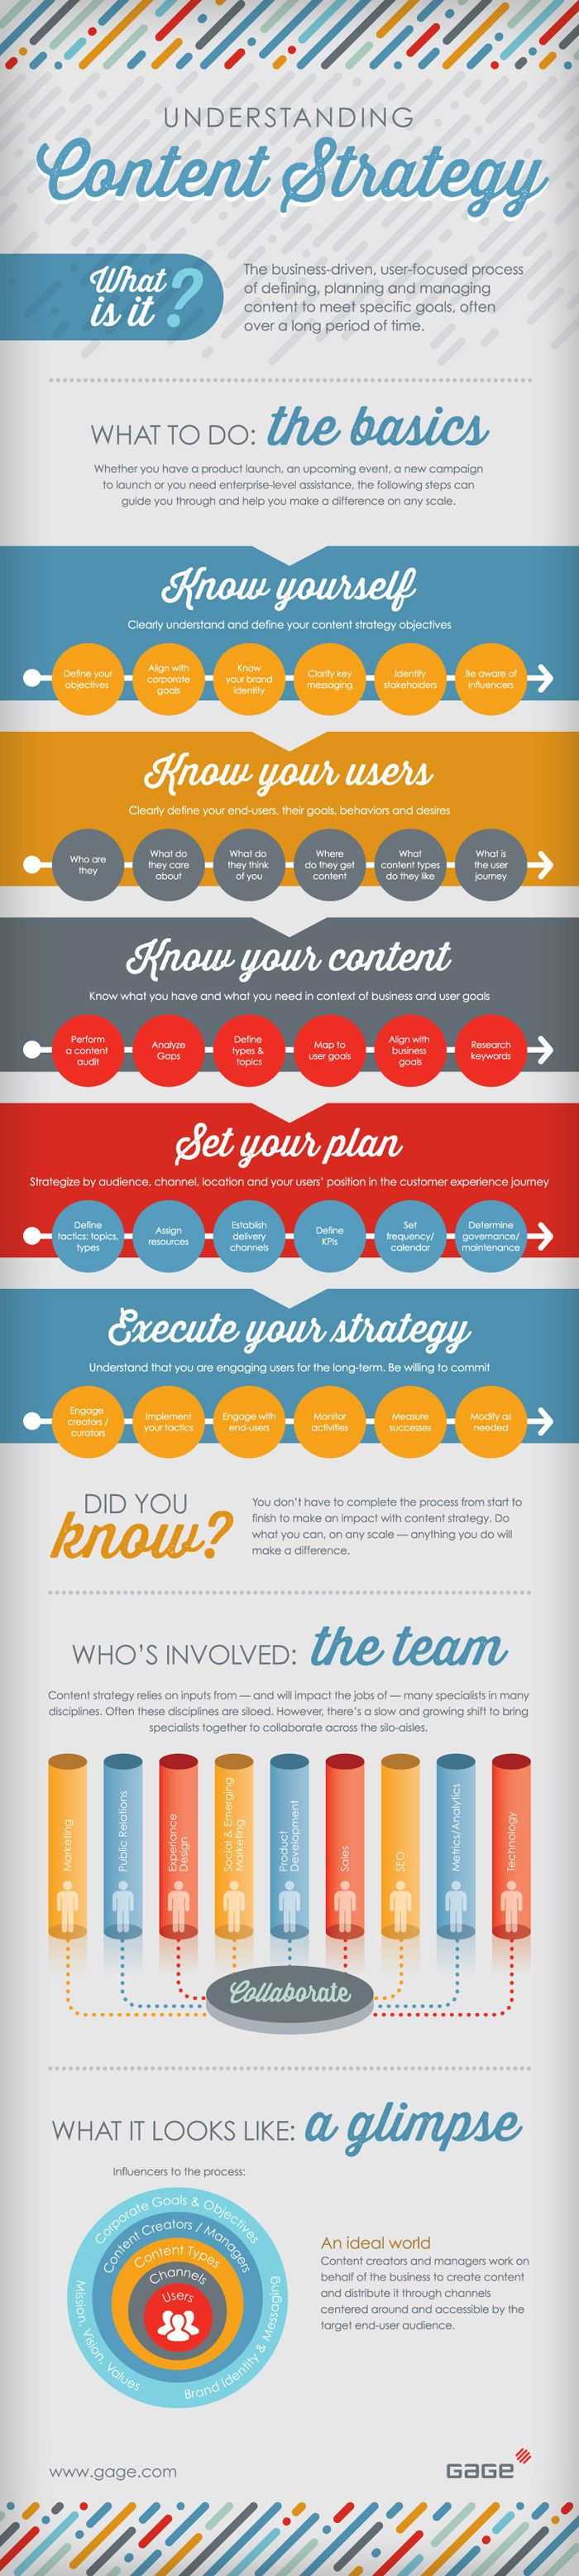 how to create a effective content marketing strategy - infographic